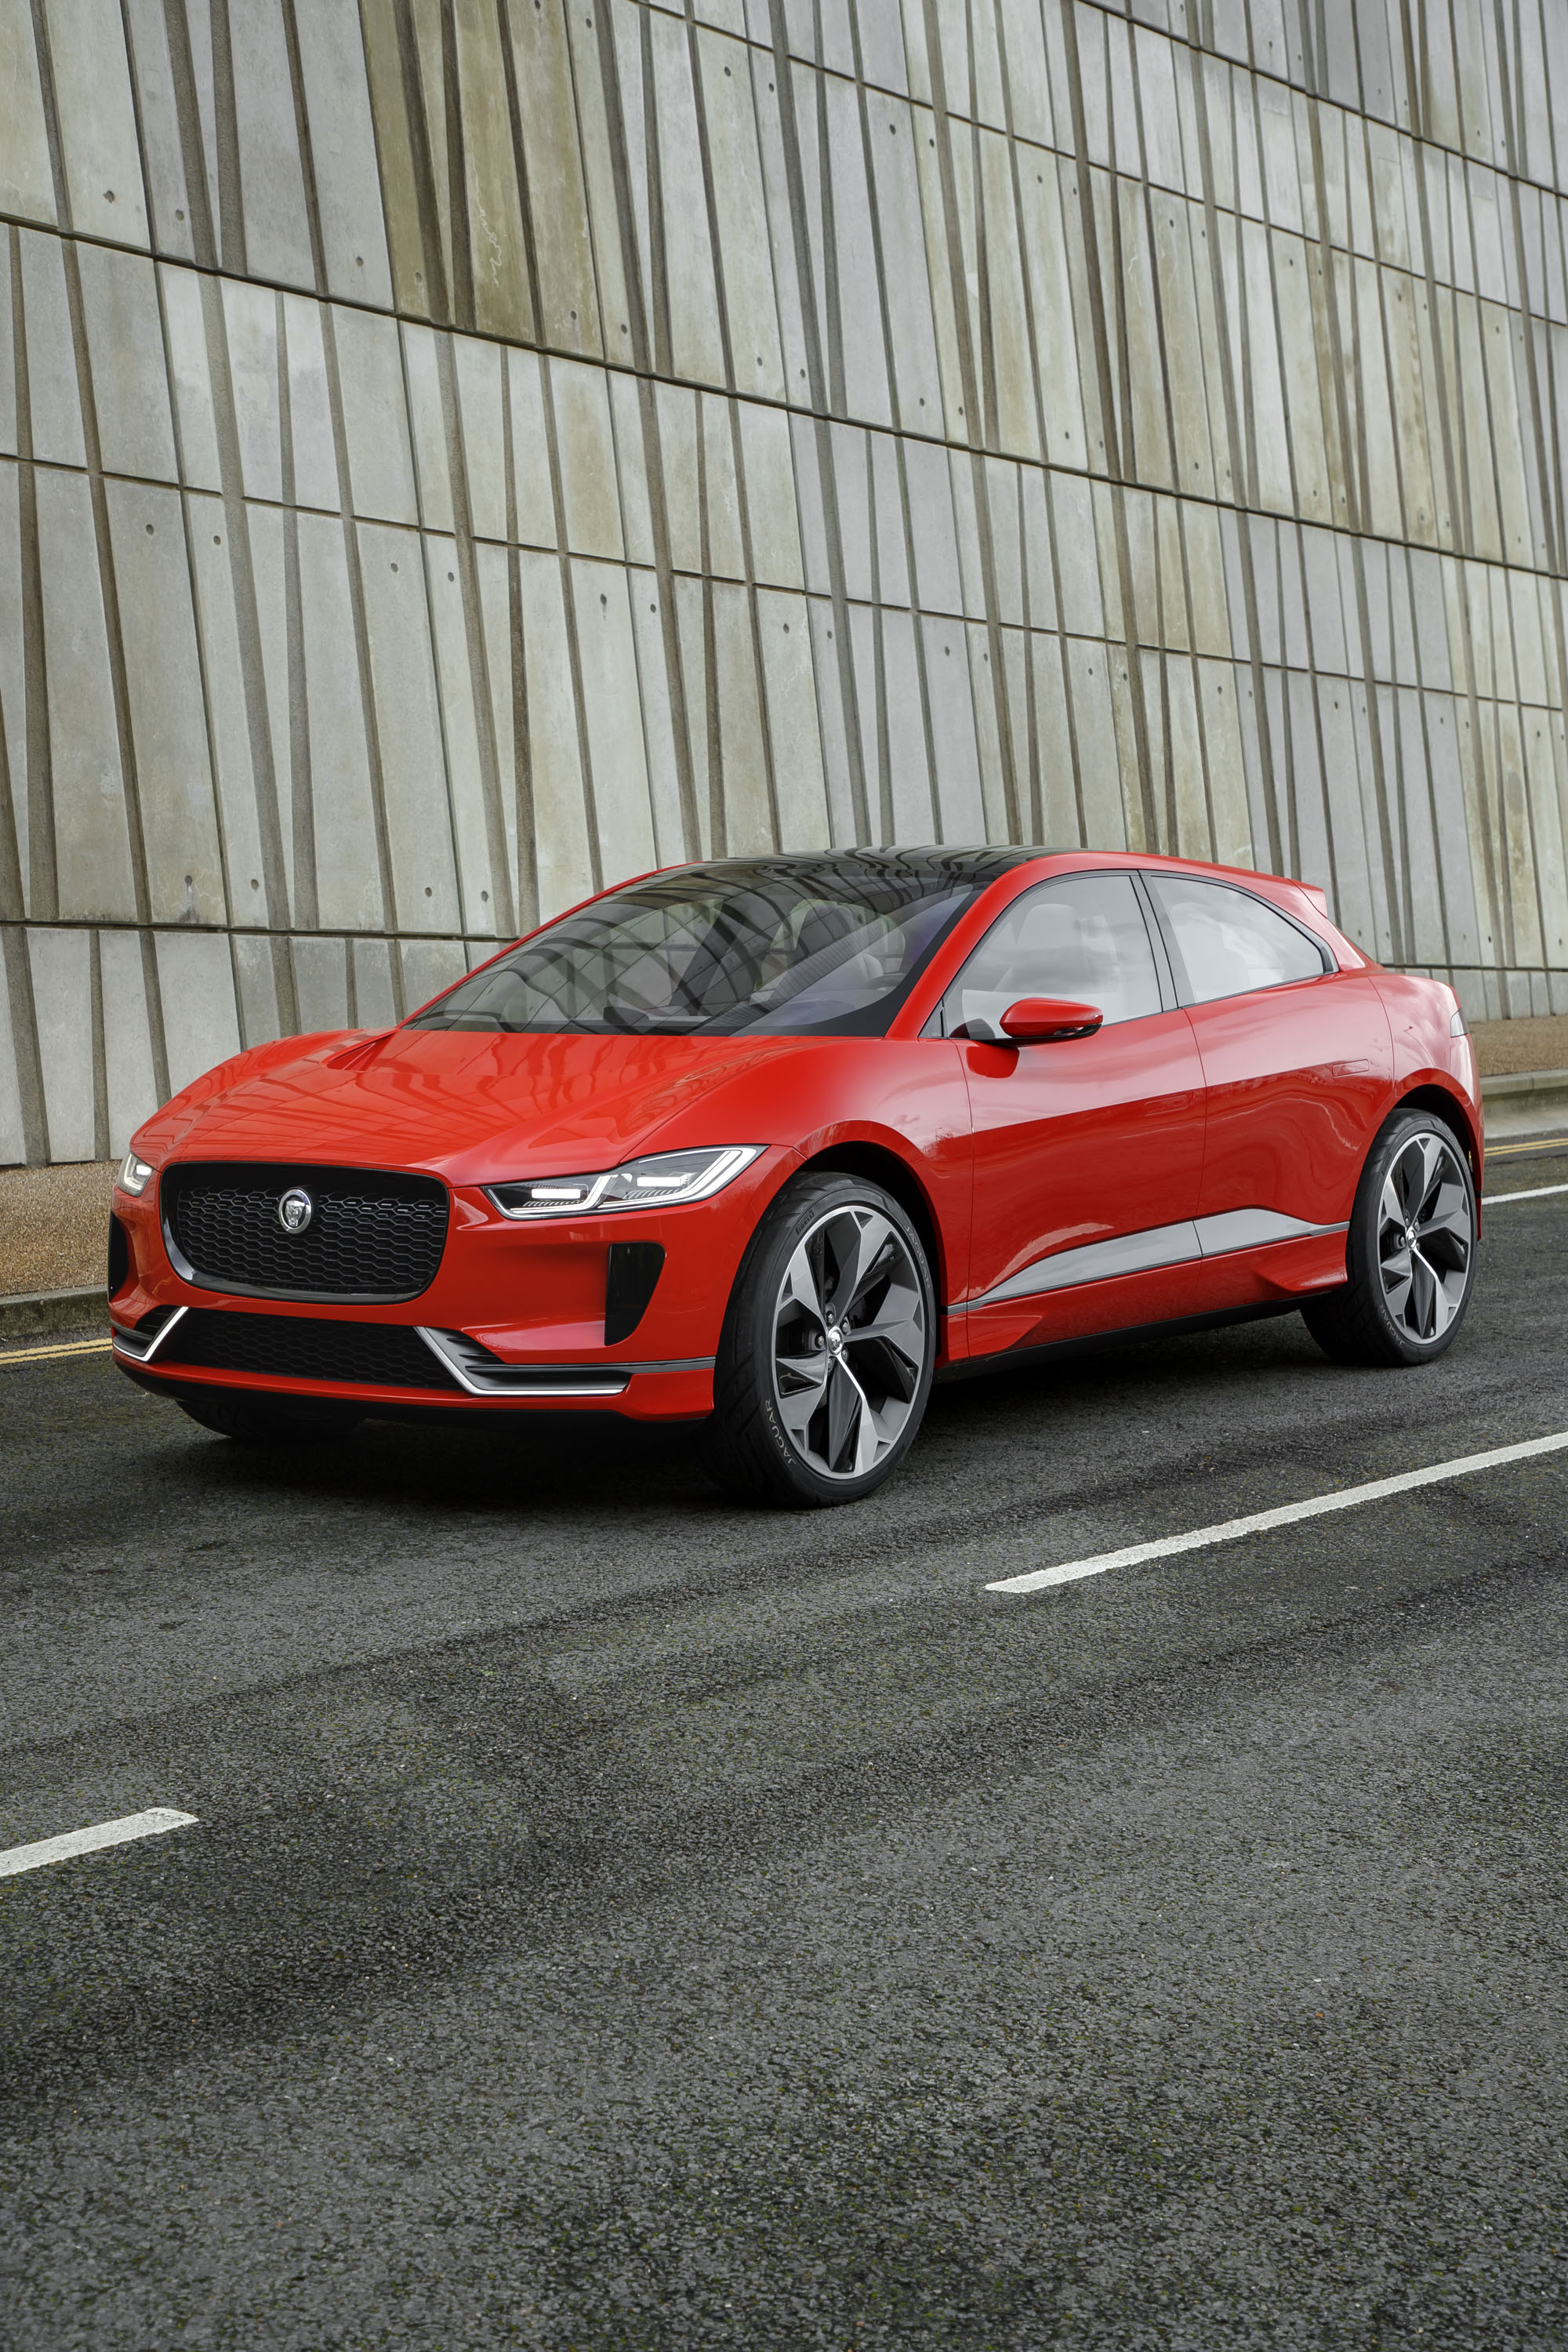 2016 Jaguar I-Pace Concept Gallery 710548   Top Speed